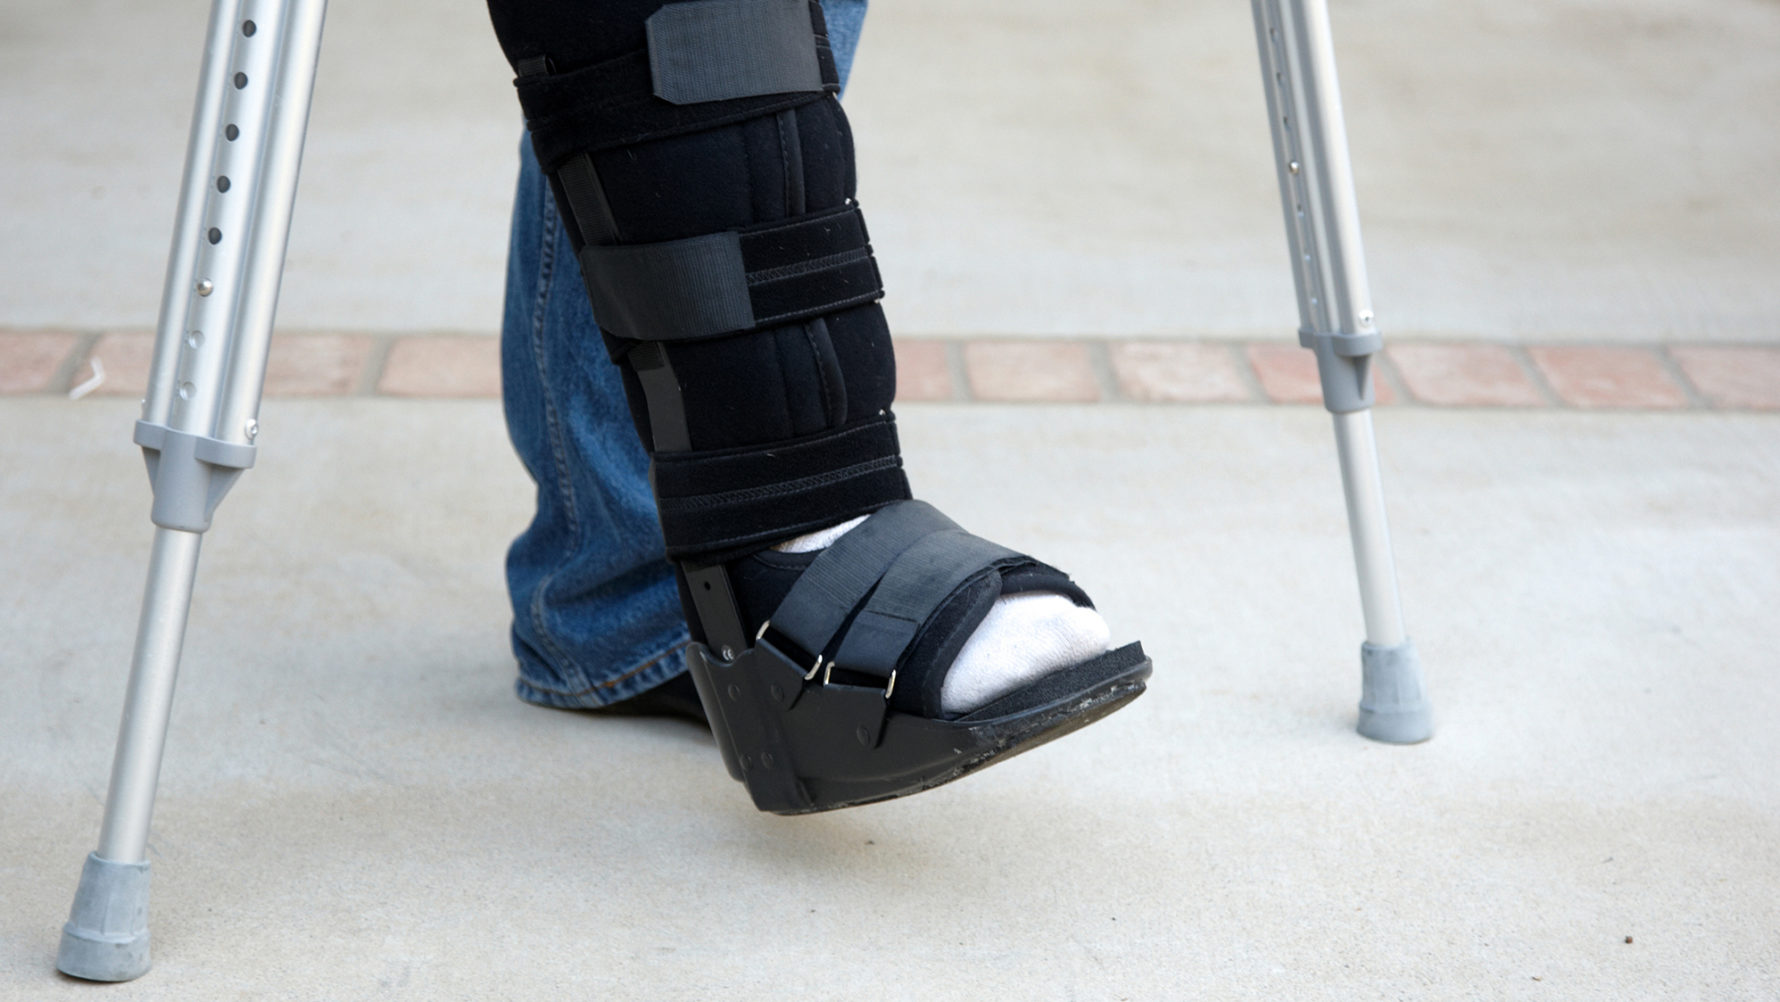 Sprained Your Ankle The Cost Of A Walking Boot Could Sprain Your